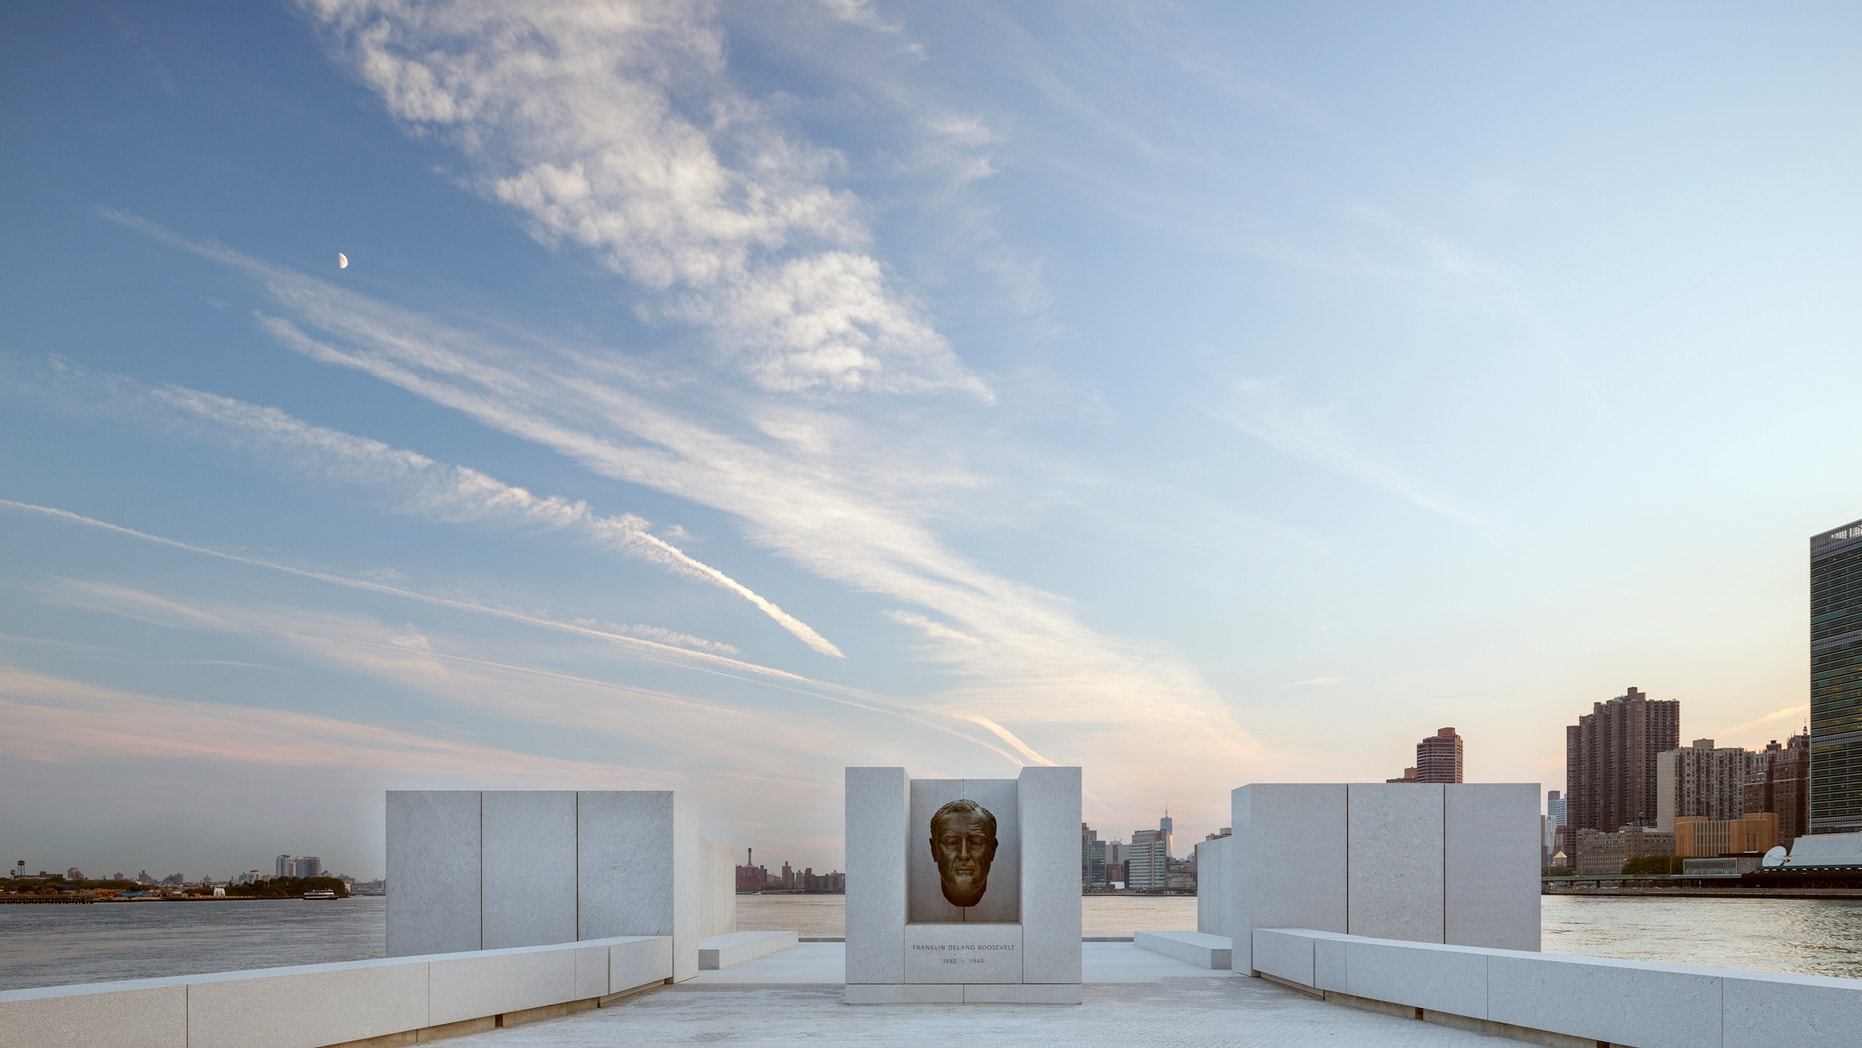 Aug. 24, 2012: The New York City memorial park, honoring President Franklin D. Roosevelt, has been completed 40 years after the original design was created